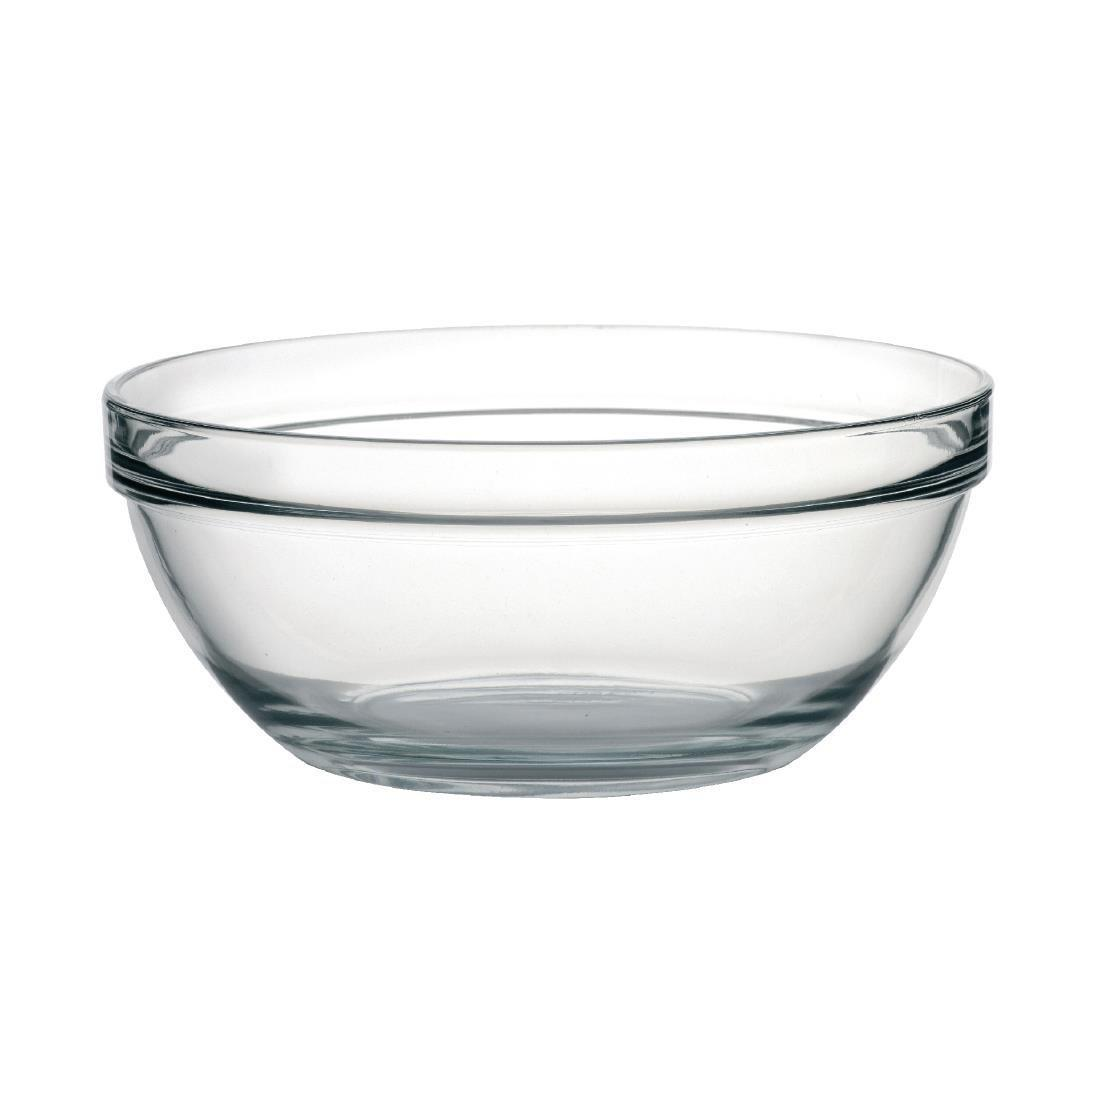 "Arc Chefs Glass Bowl - 4.3Ltr 145oz 26cm 10 1/4"" (Box 6) - E553"